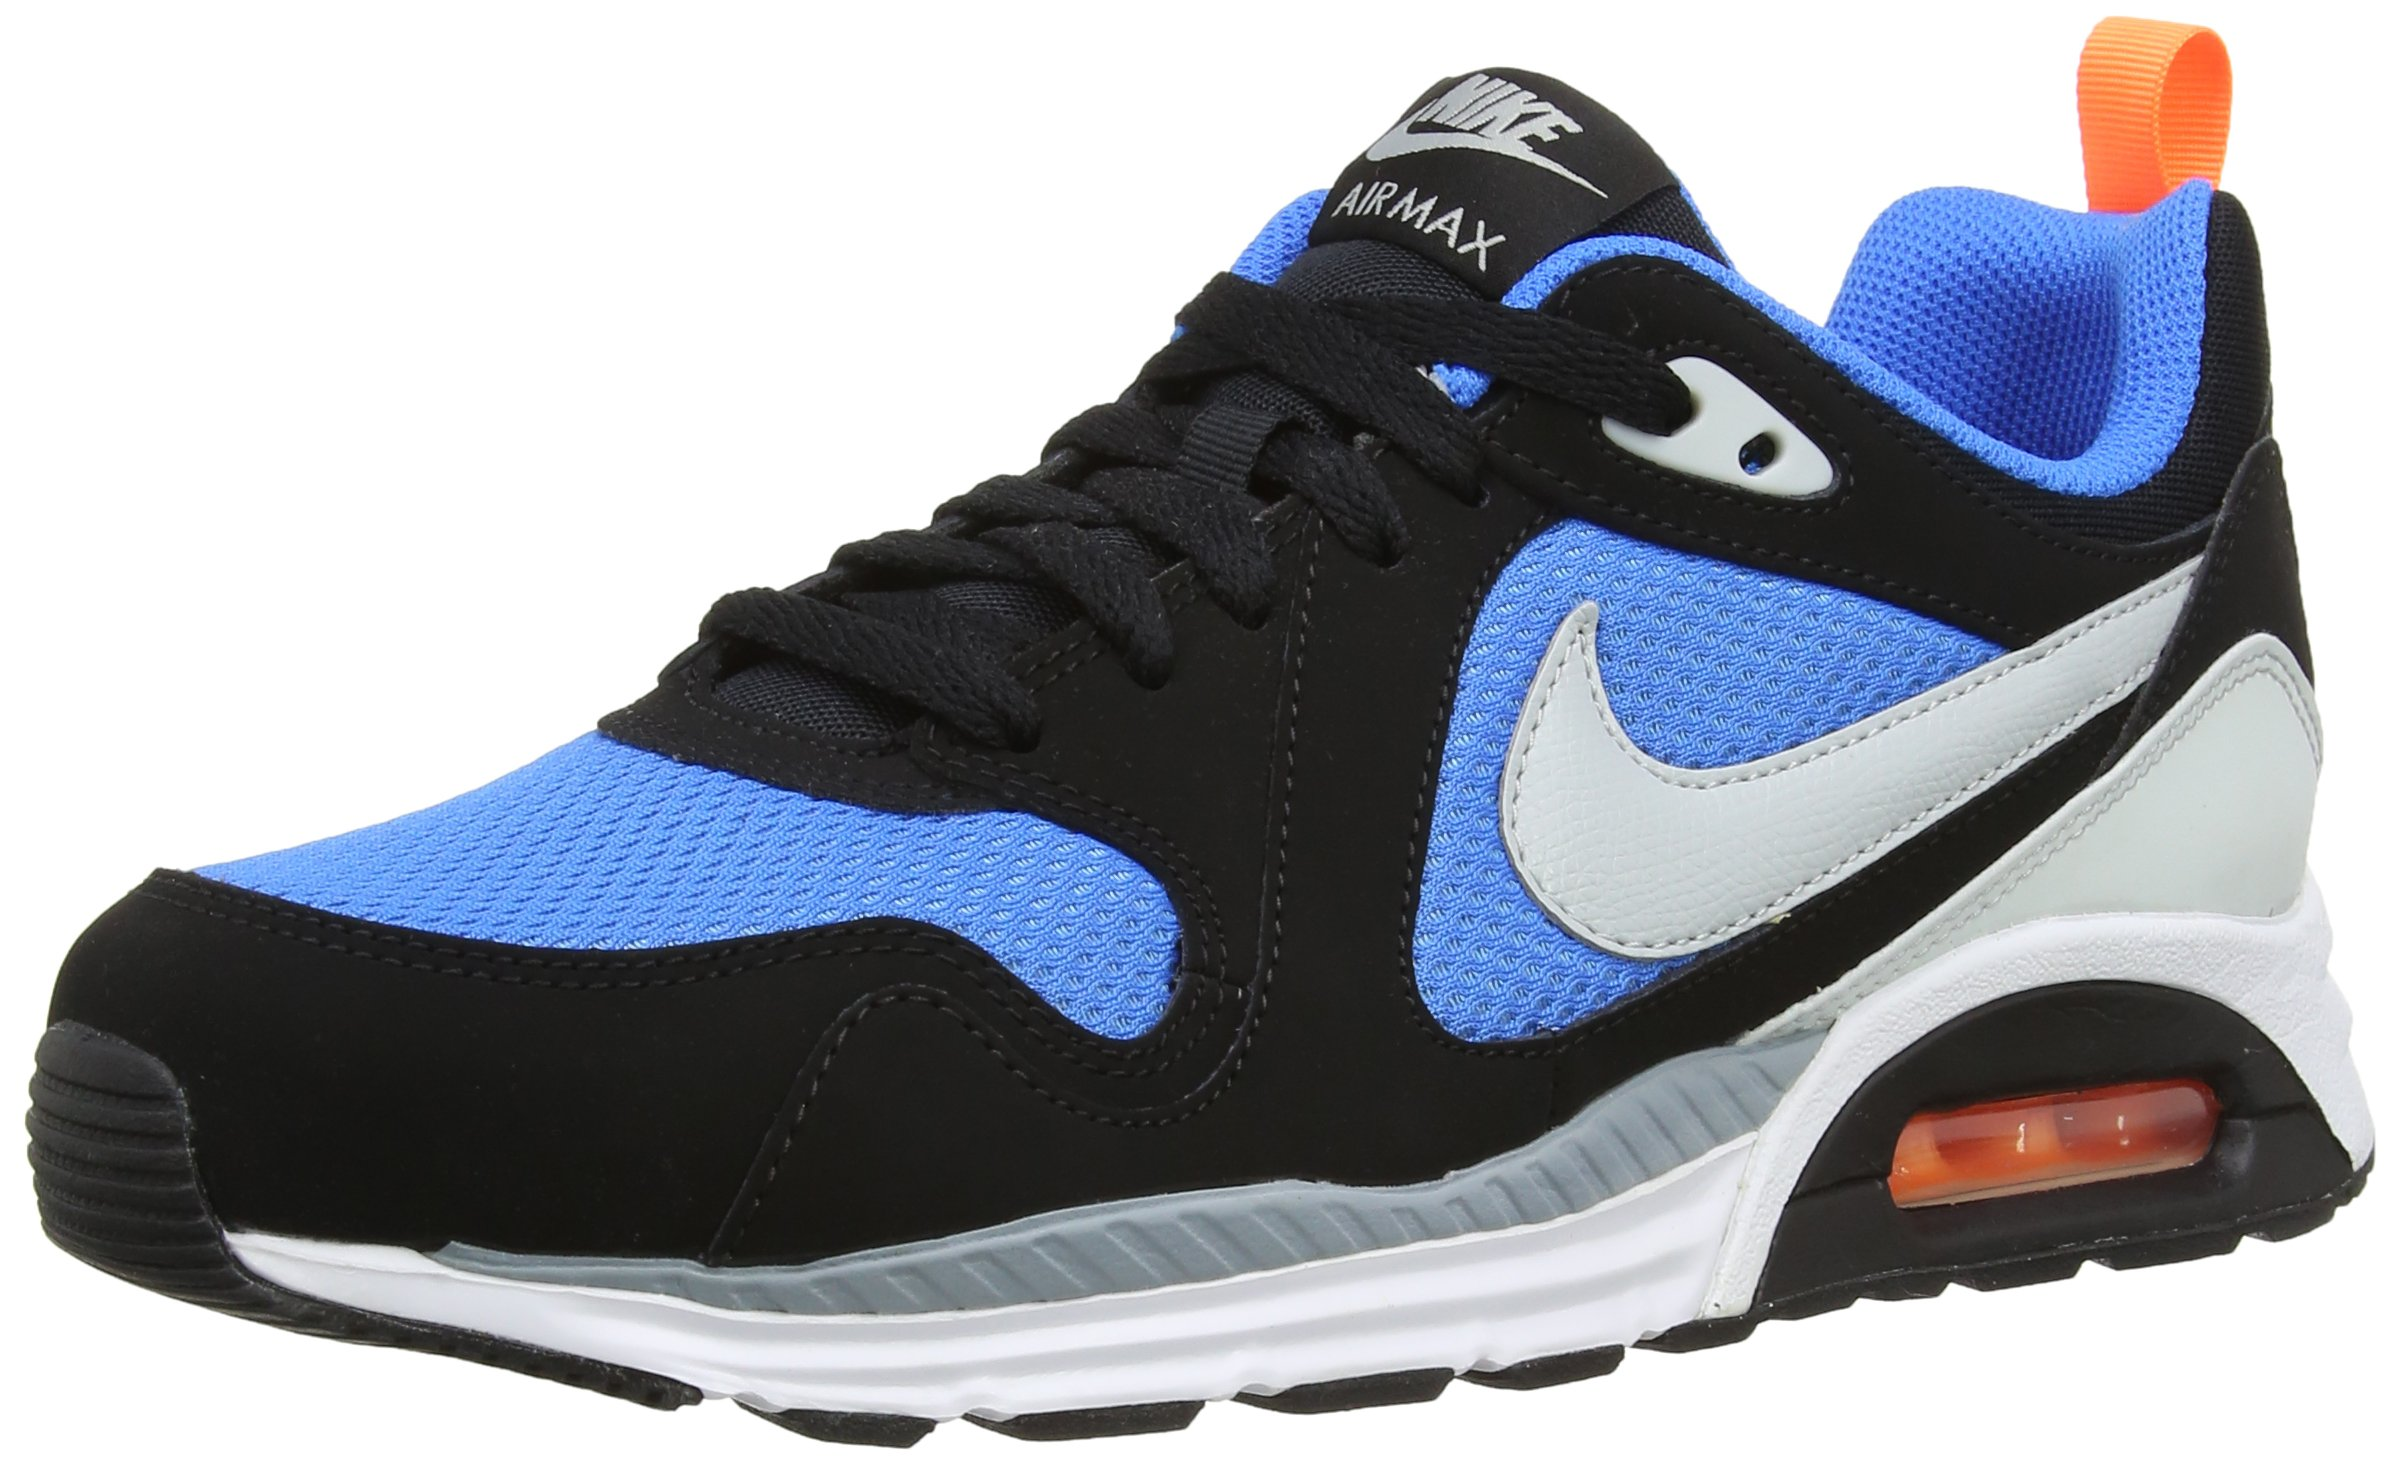 Buy Air Max Trax Now!